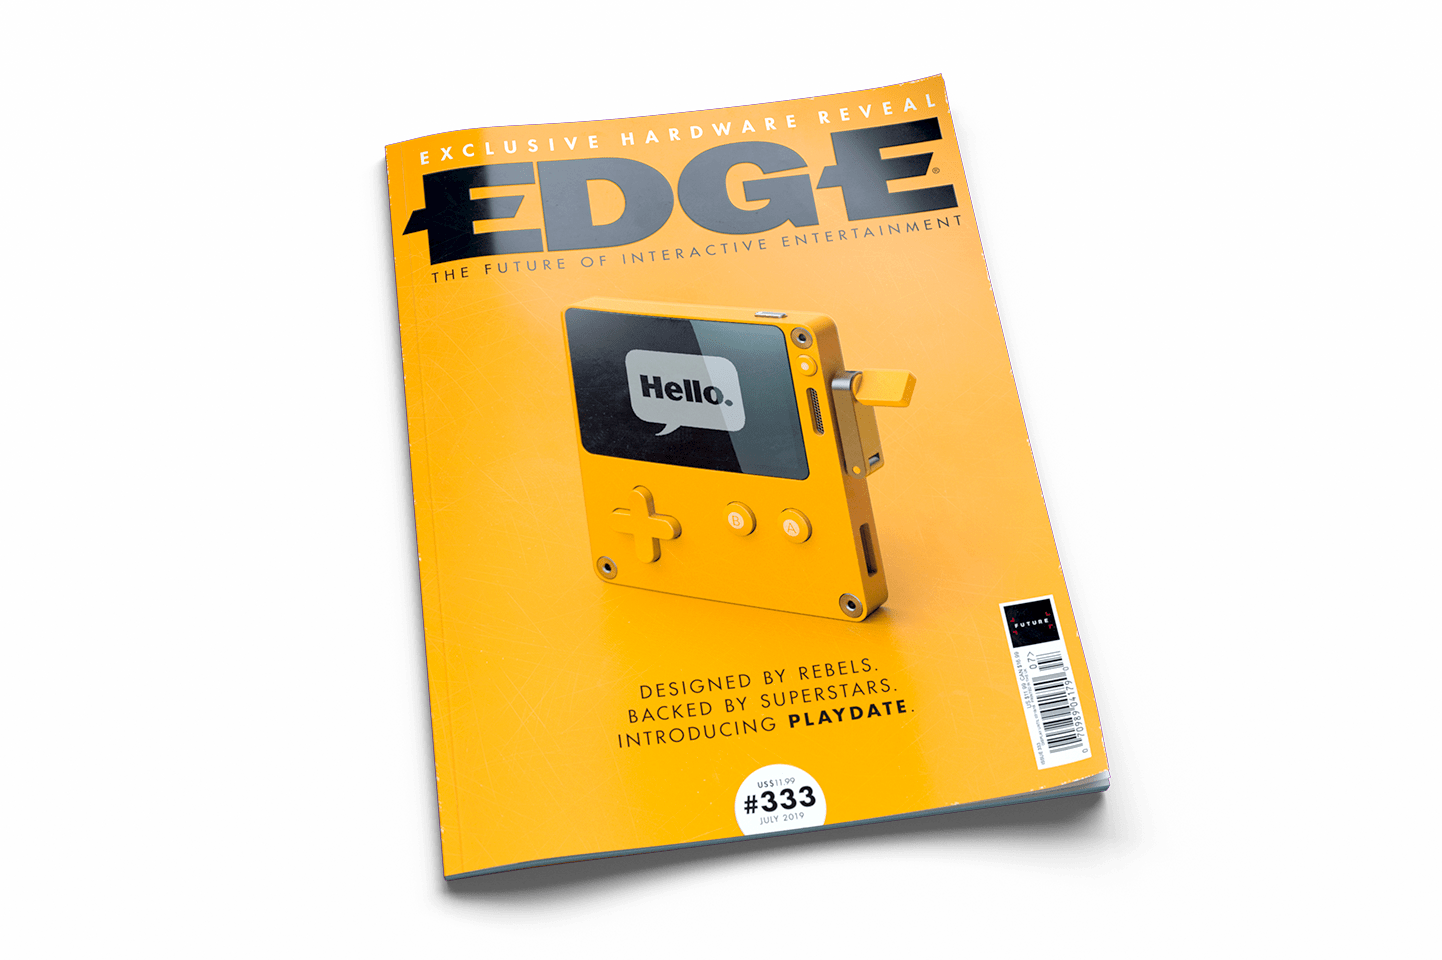 Issue #333 of Edge Magazine